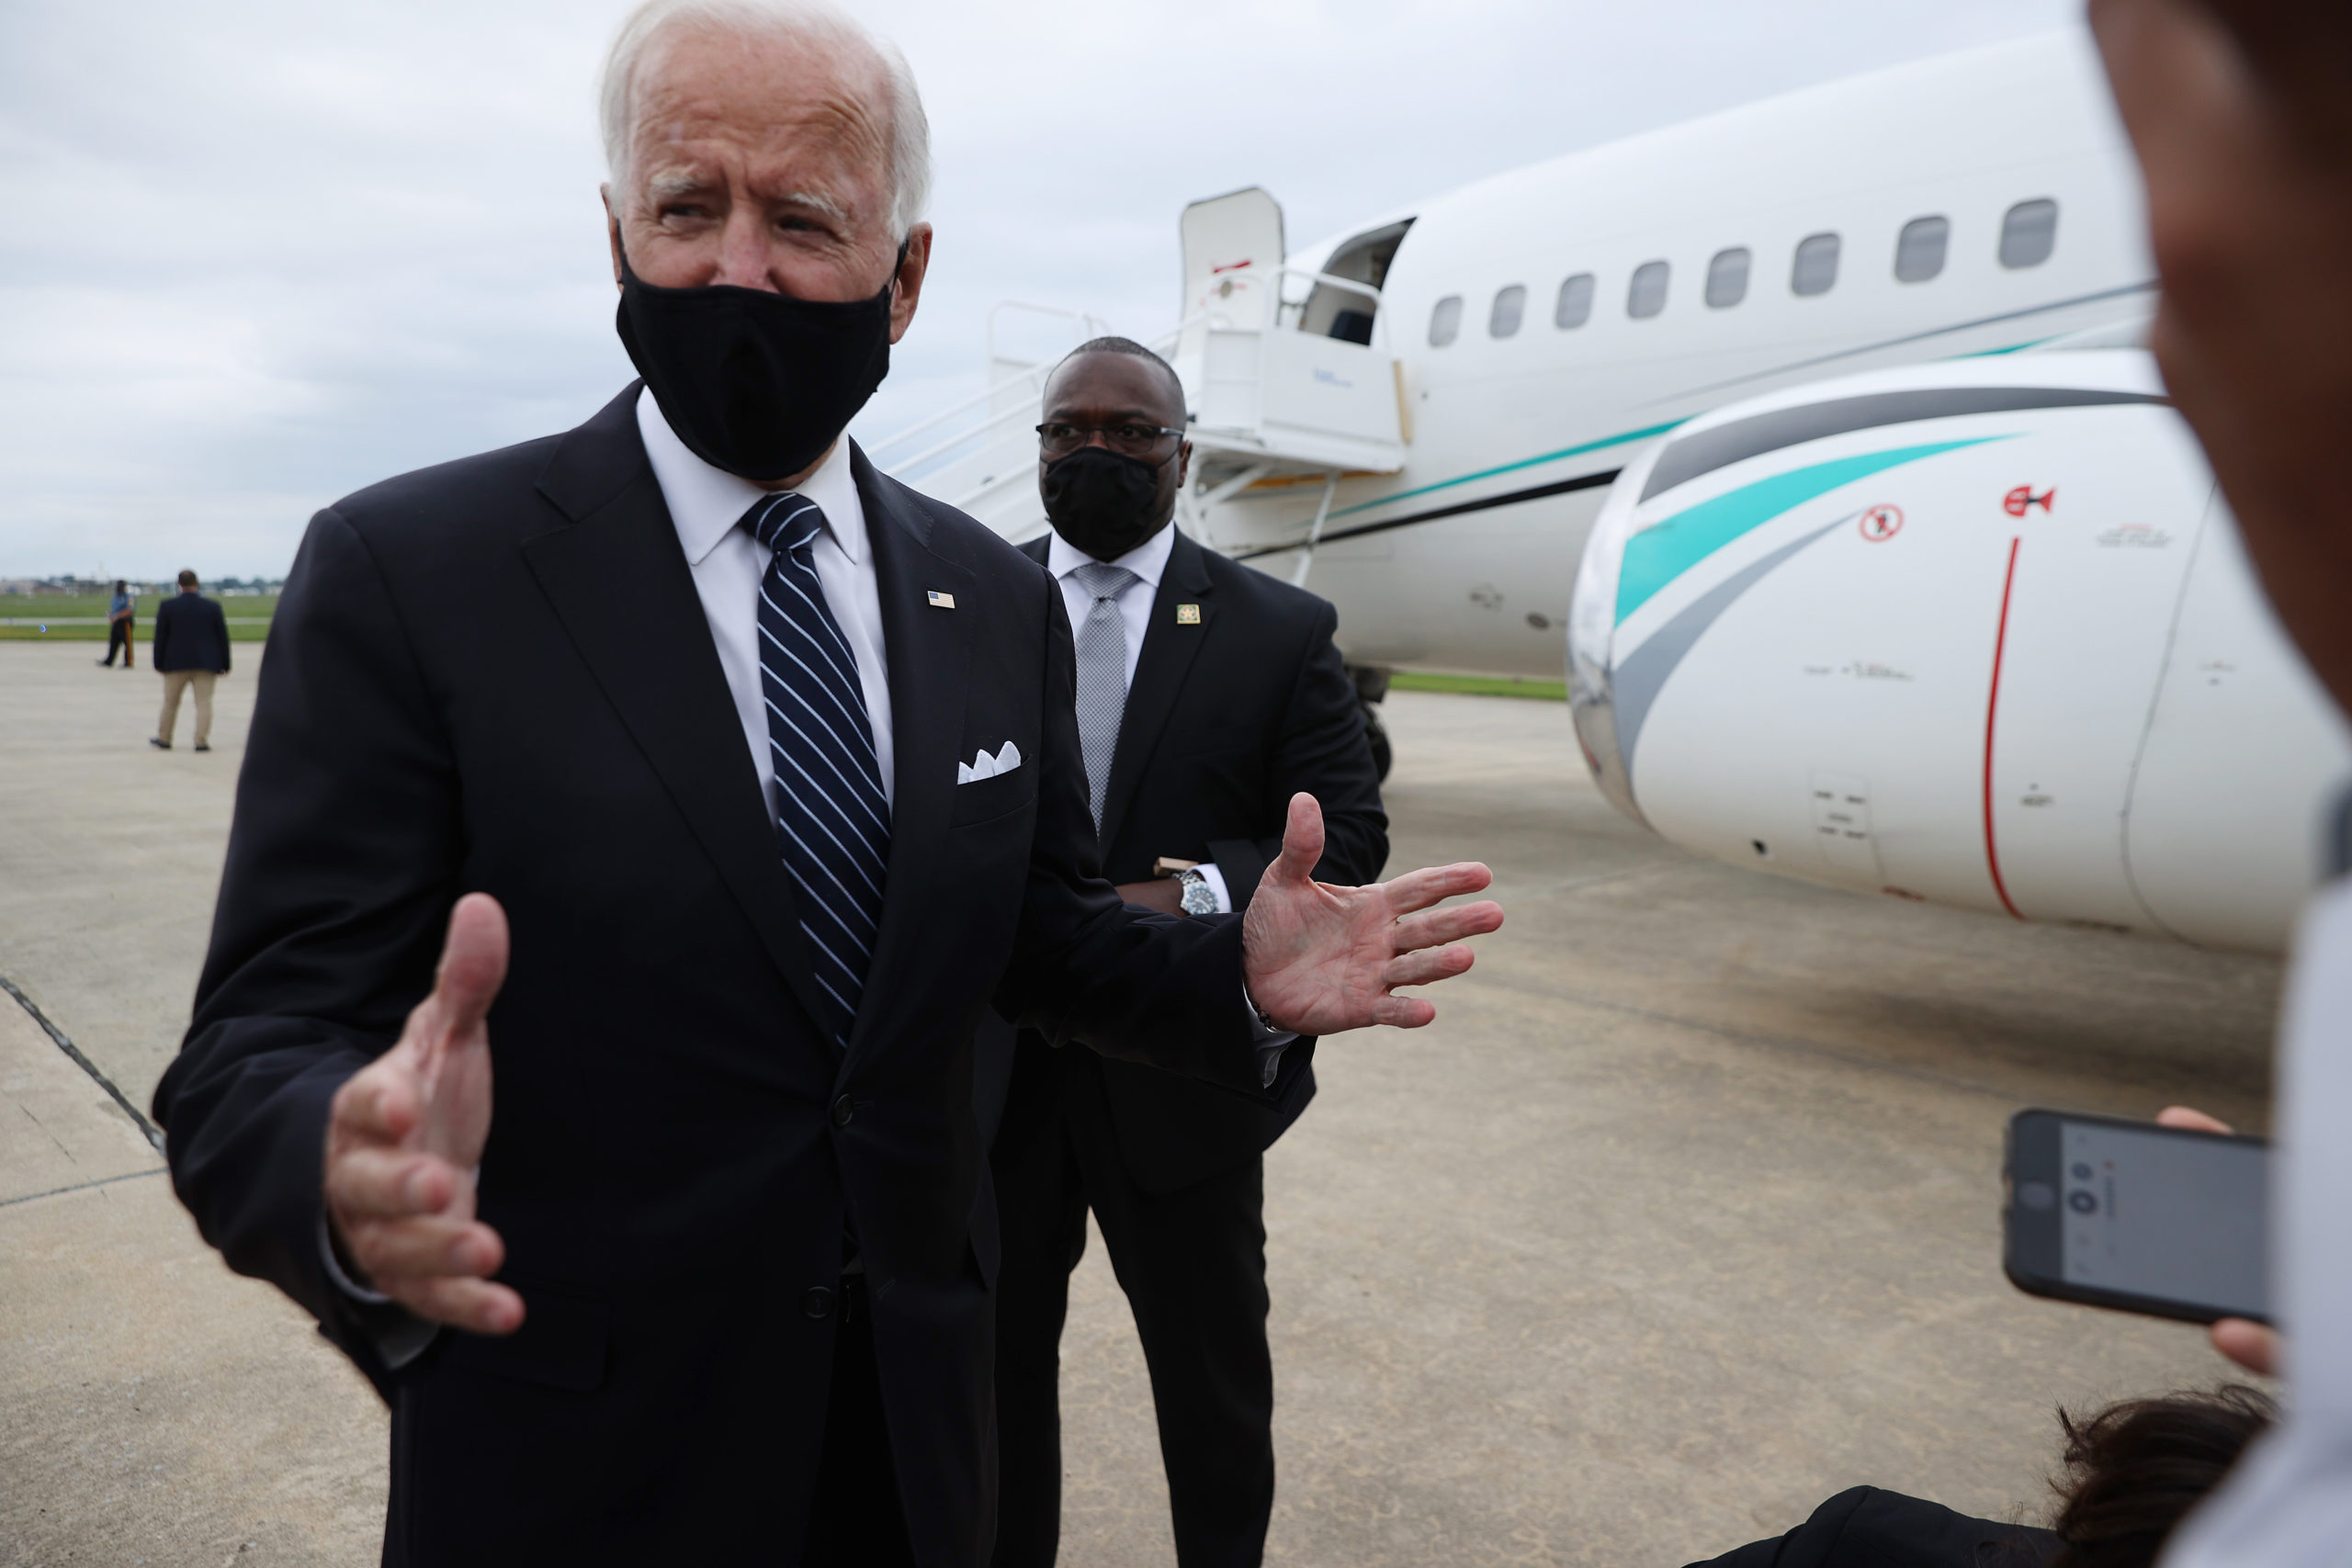 Democratic presidential nominee and former Vice President Joe Biden speaks briefly with journalists after returning to his home state at New Castle County Airport September 11, 2020 in New Castle, Delaware. (Chip Somodevilla/Getty Images)